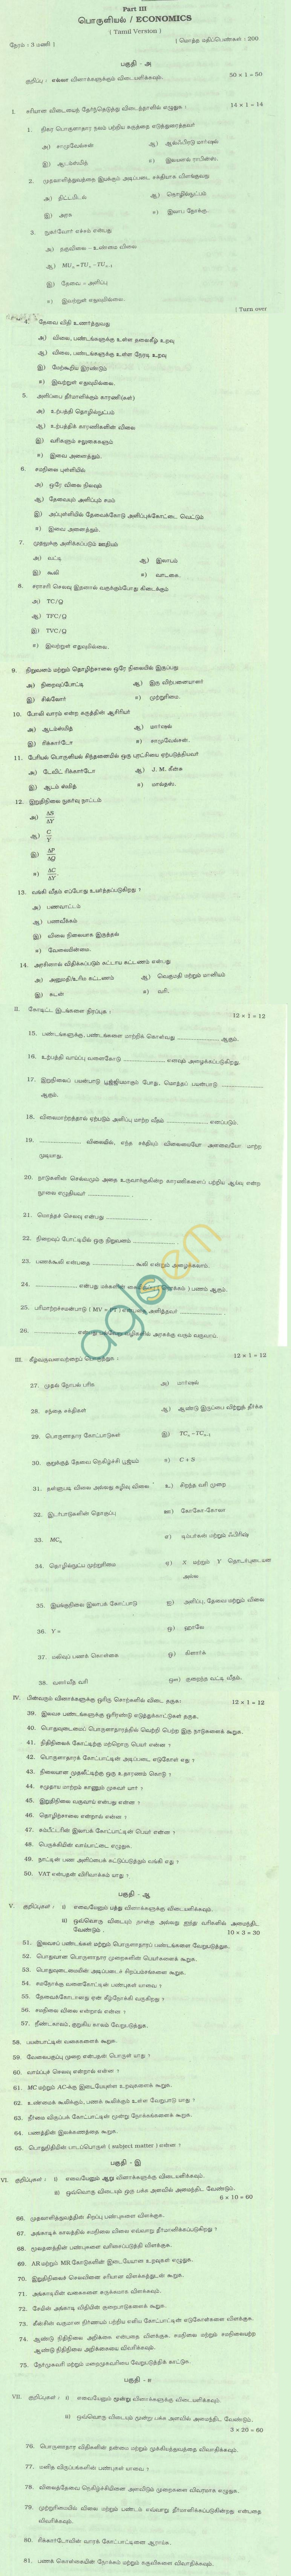 TN Board Higher Secondary (Plus 2)EconomicsQuestion PapersMarch 2011